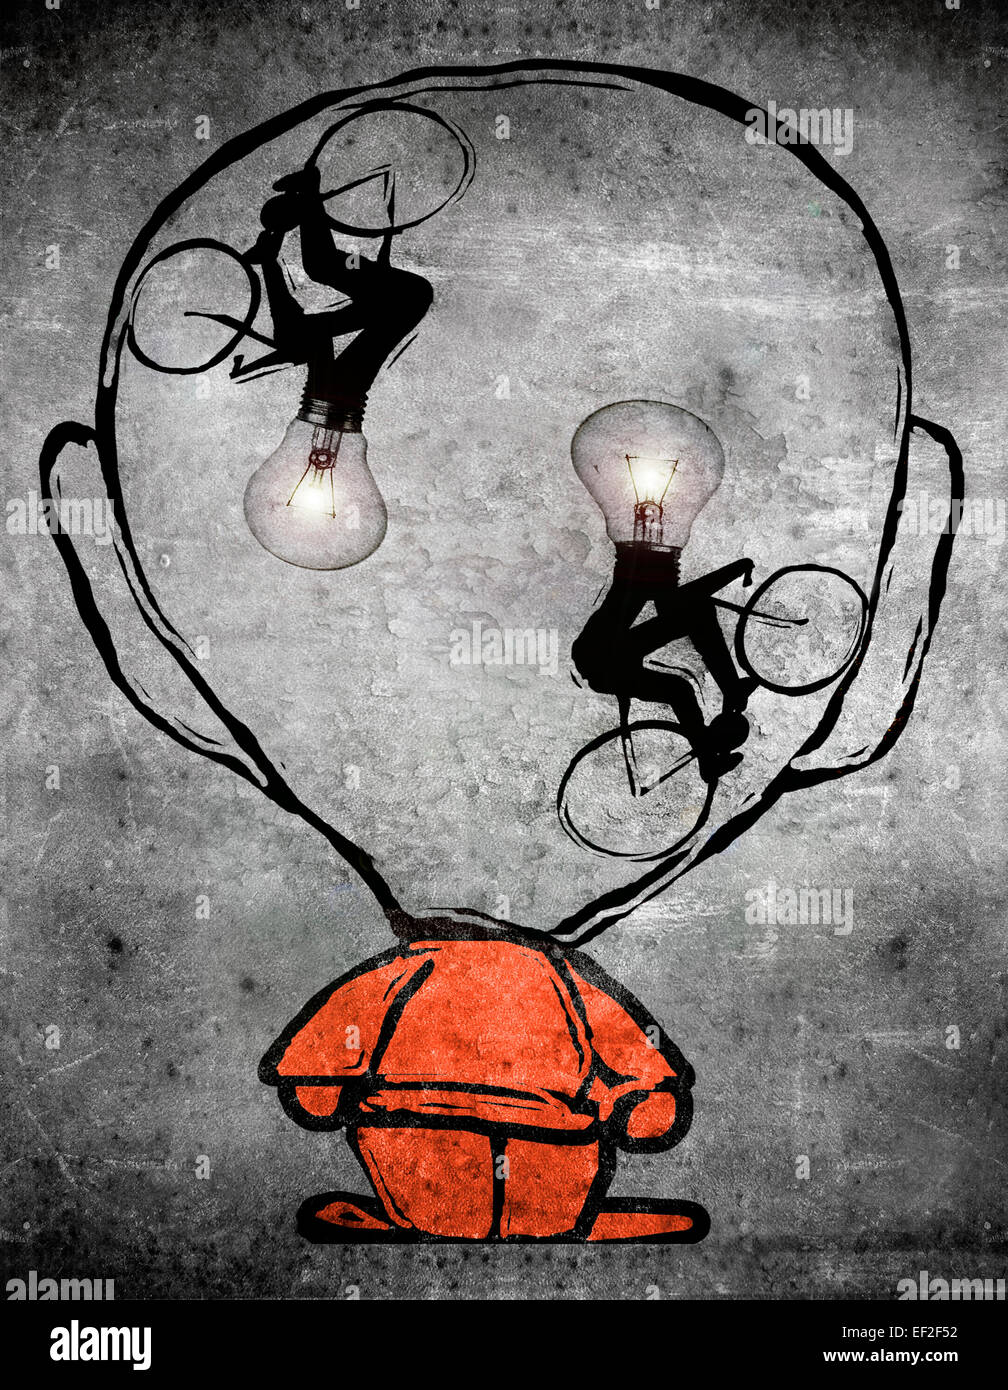 two cyclists with bulb head in the brain of a man - Stock Image